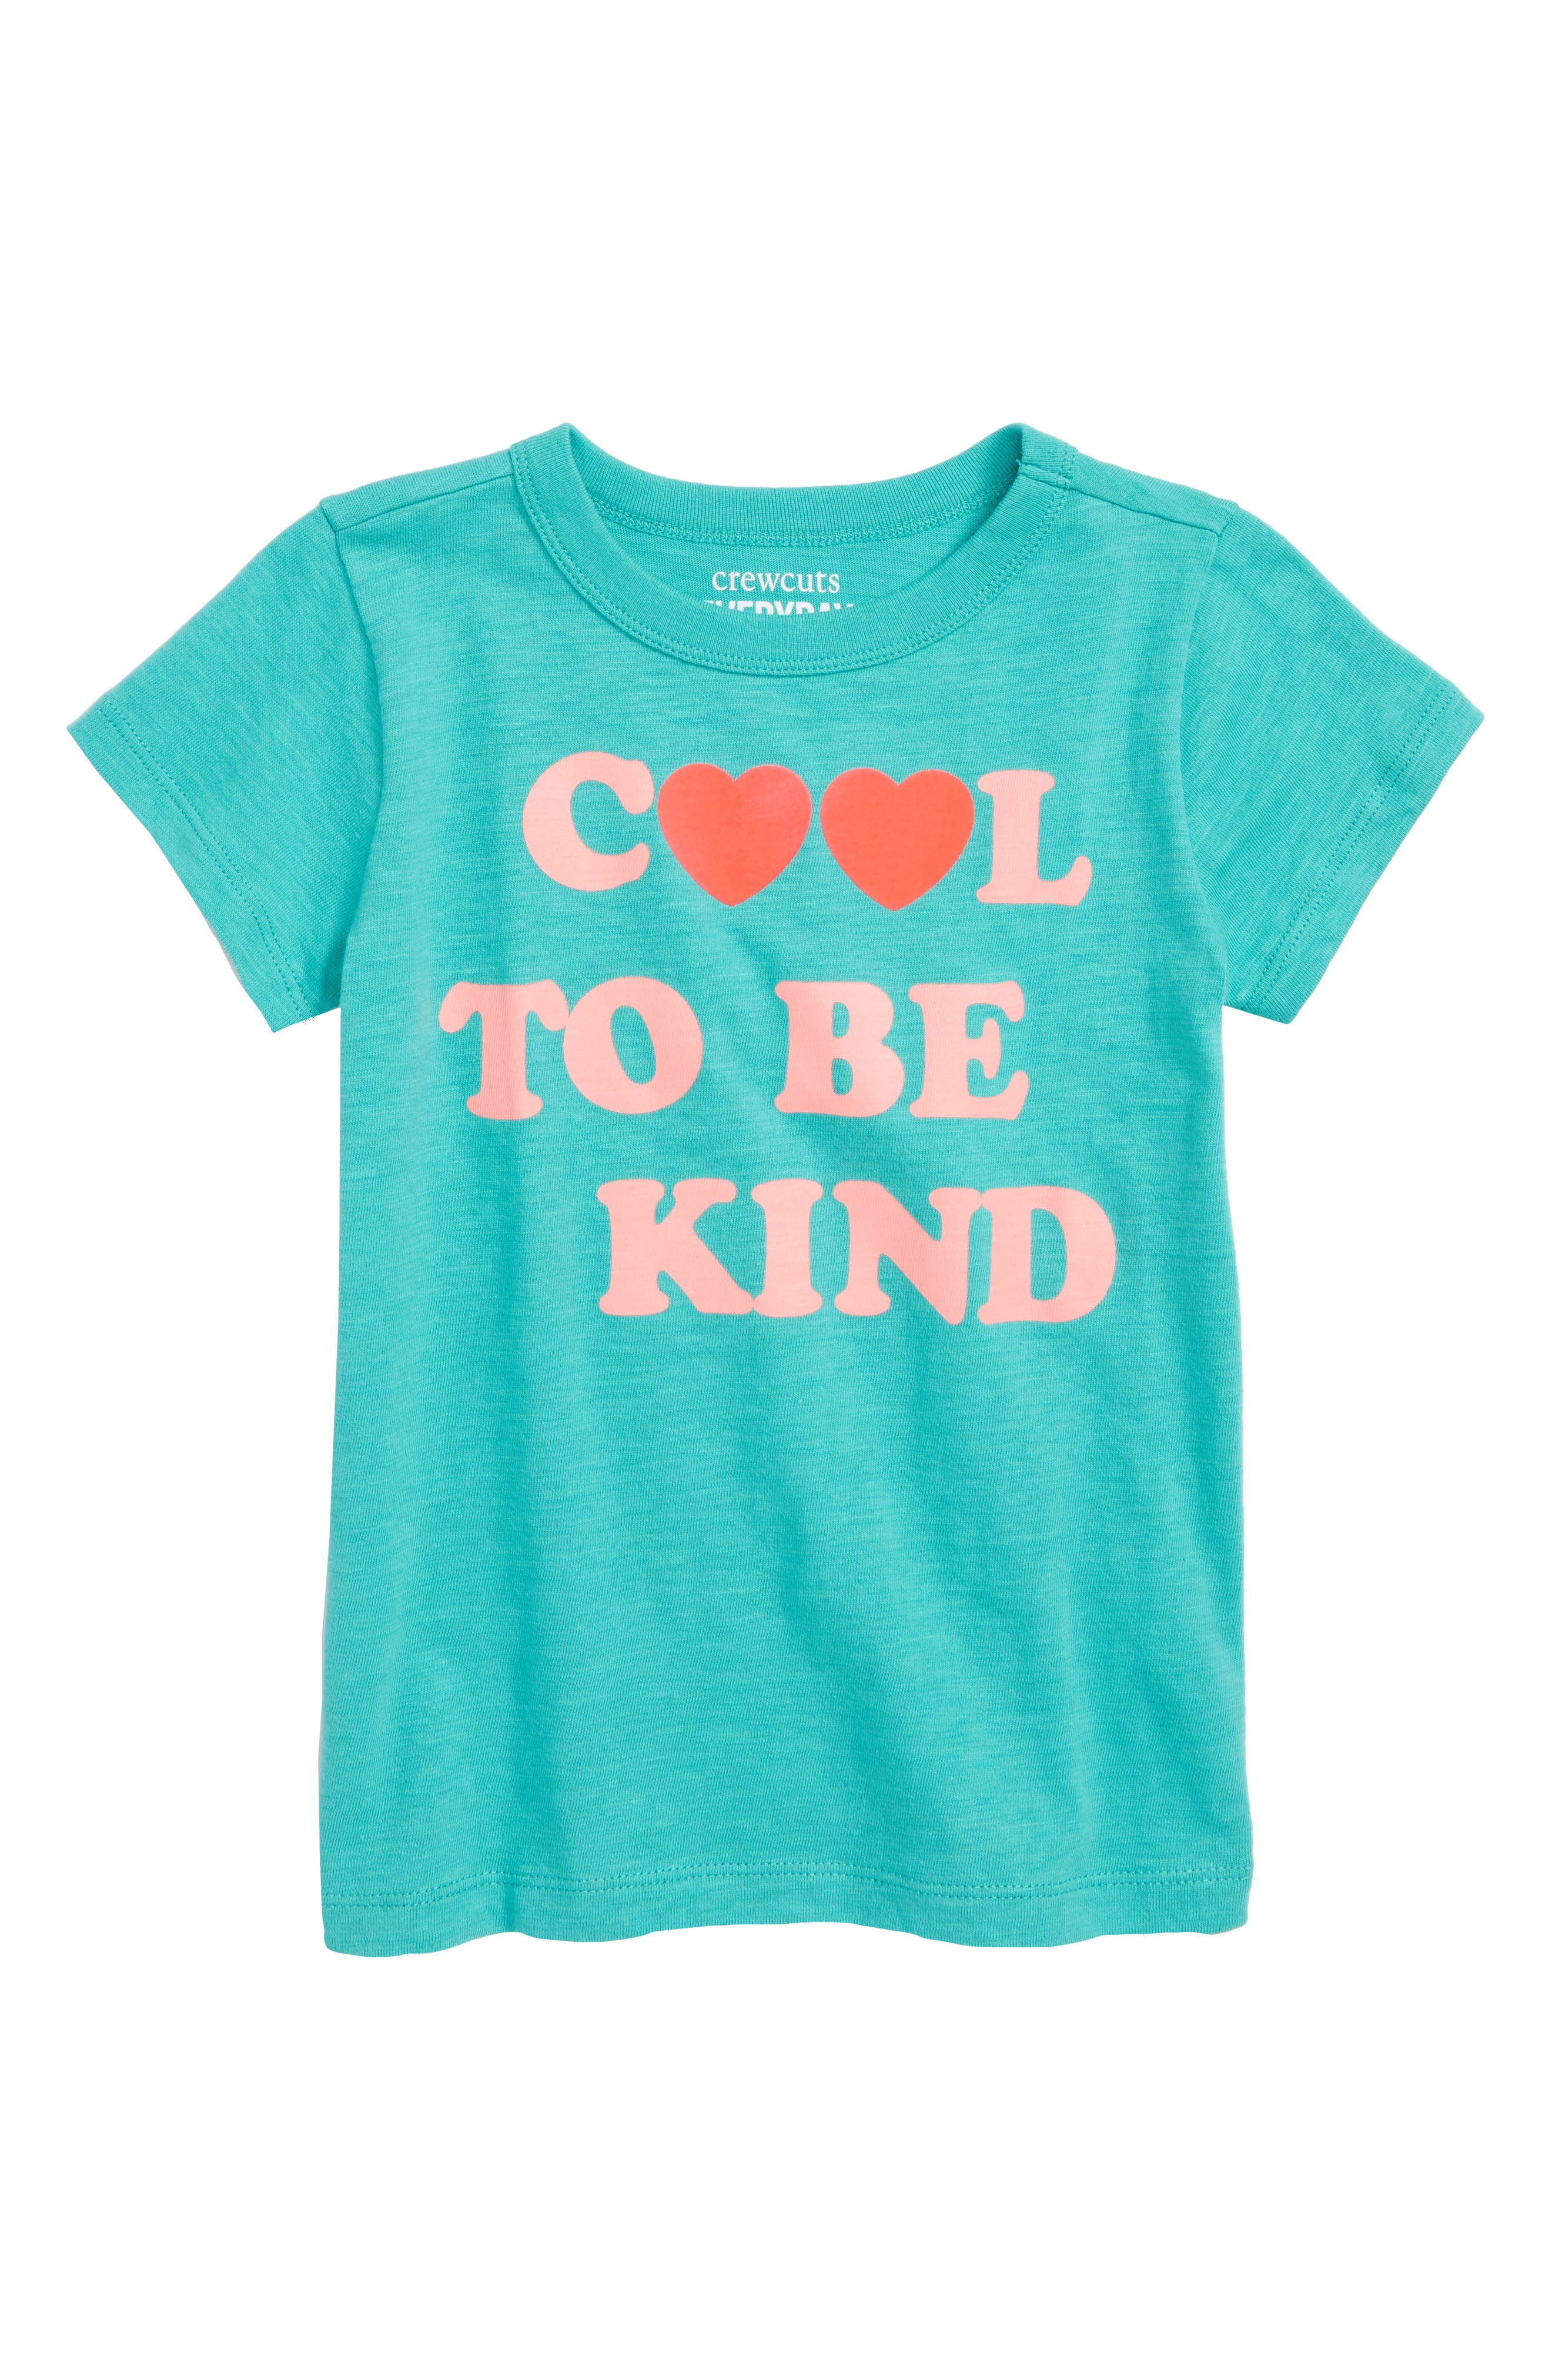 crewcuts by J. Crew Cool to Be Kind Graphic Tee,                         Main,                         color, 300